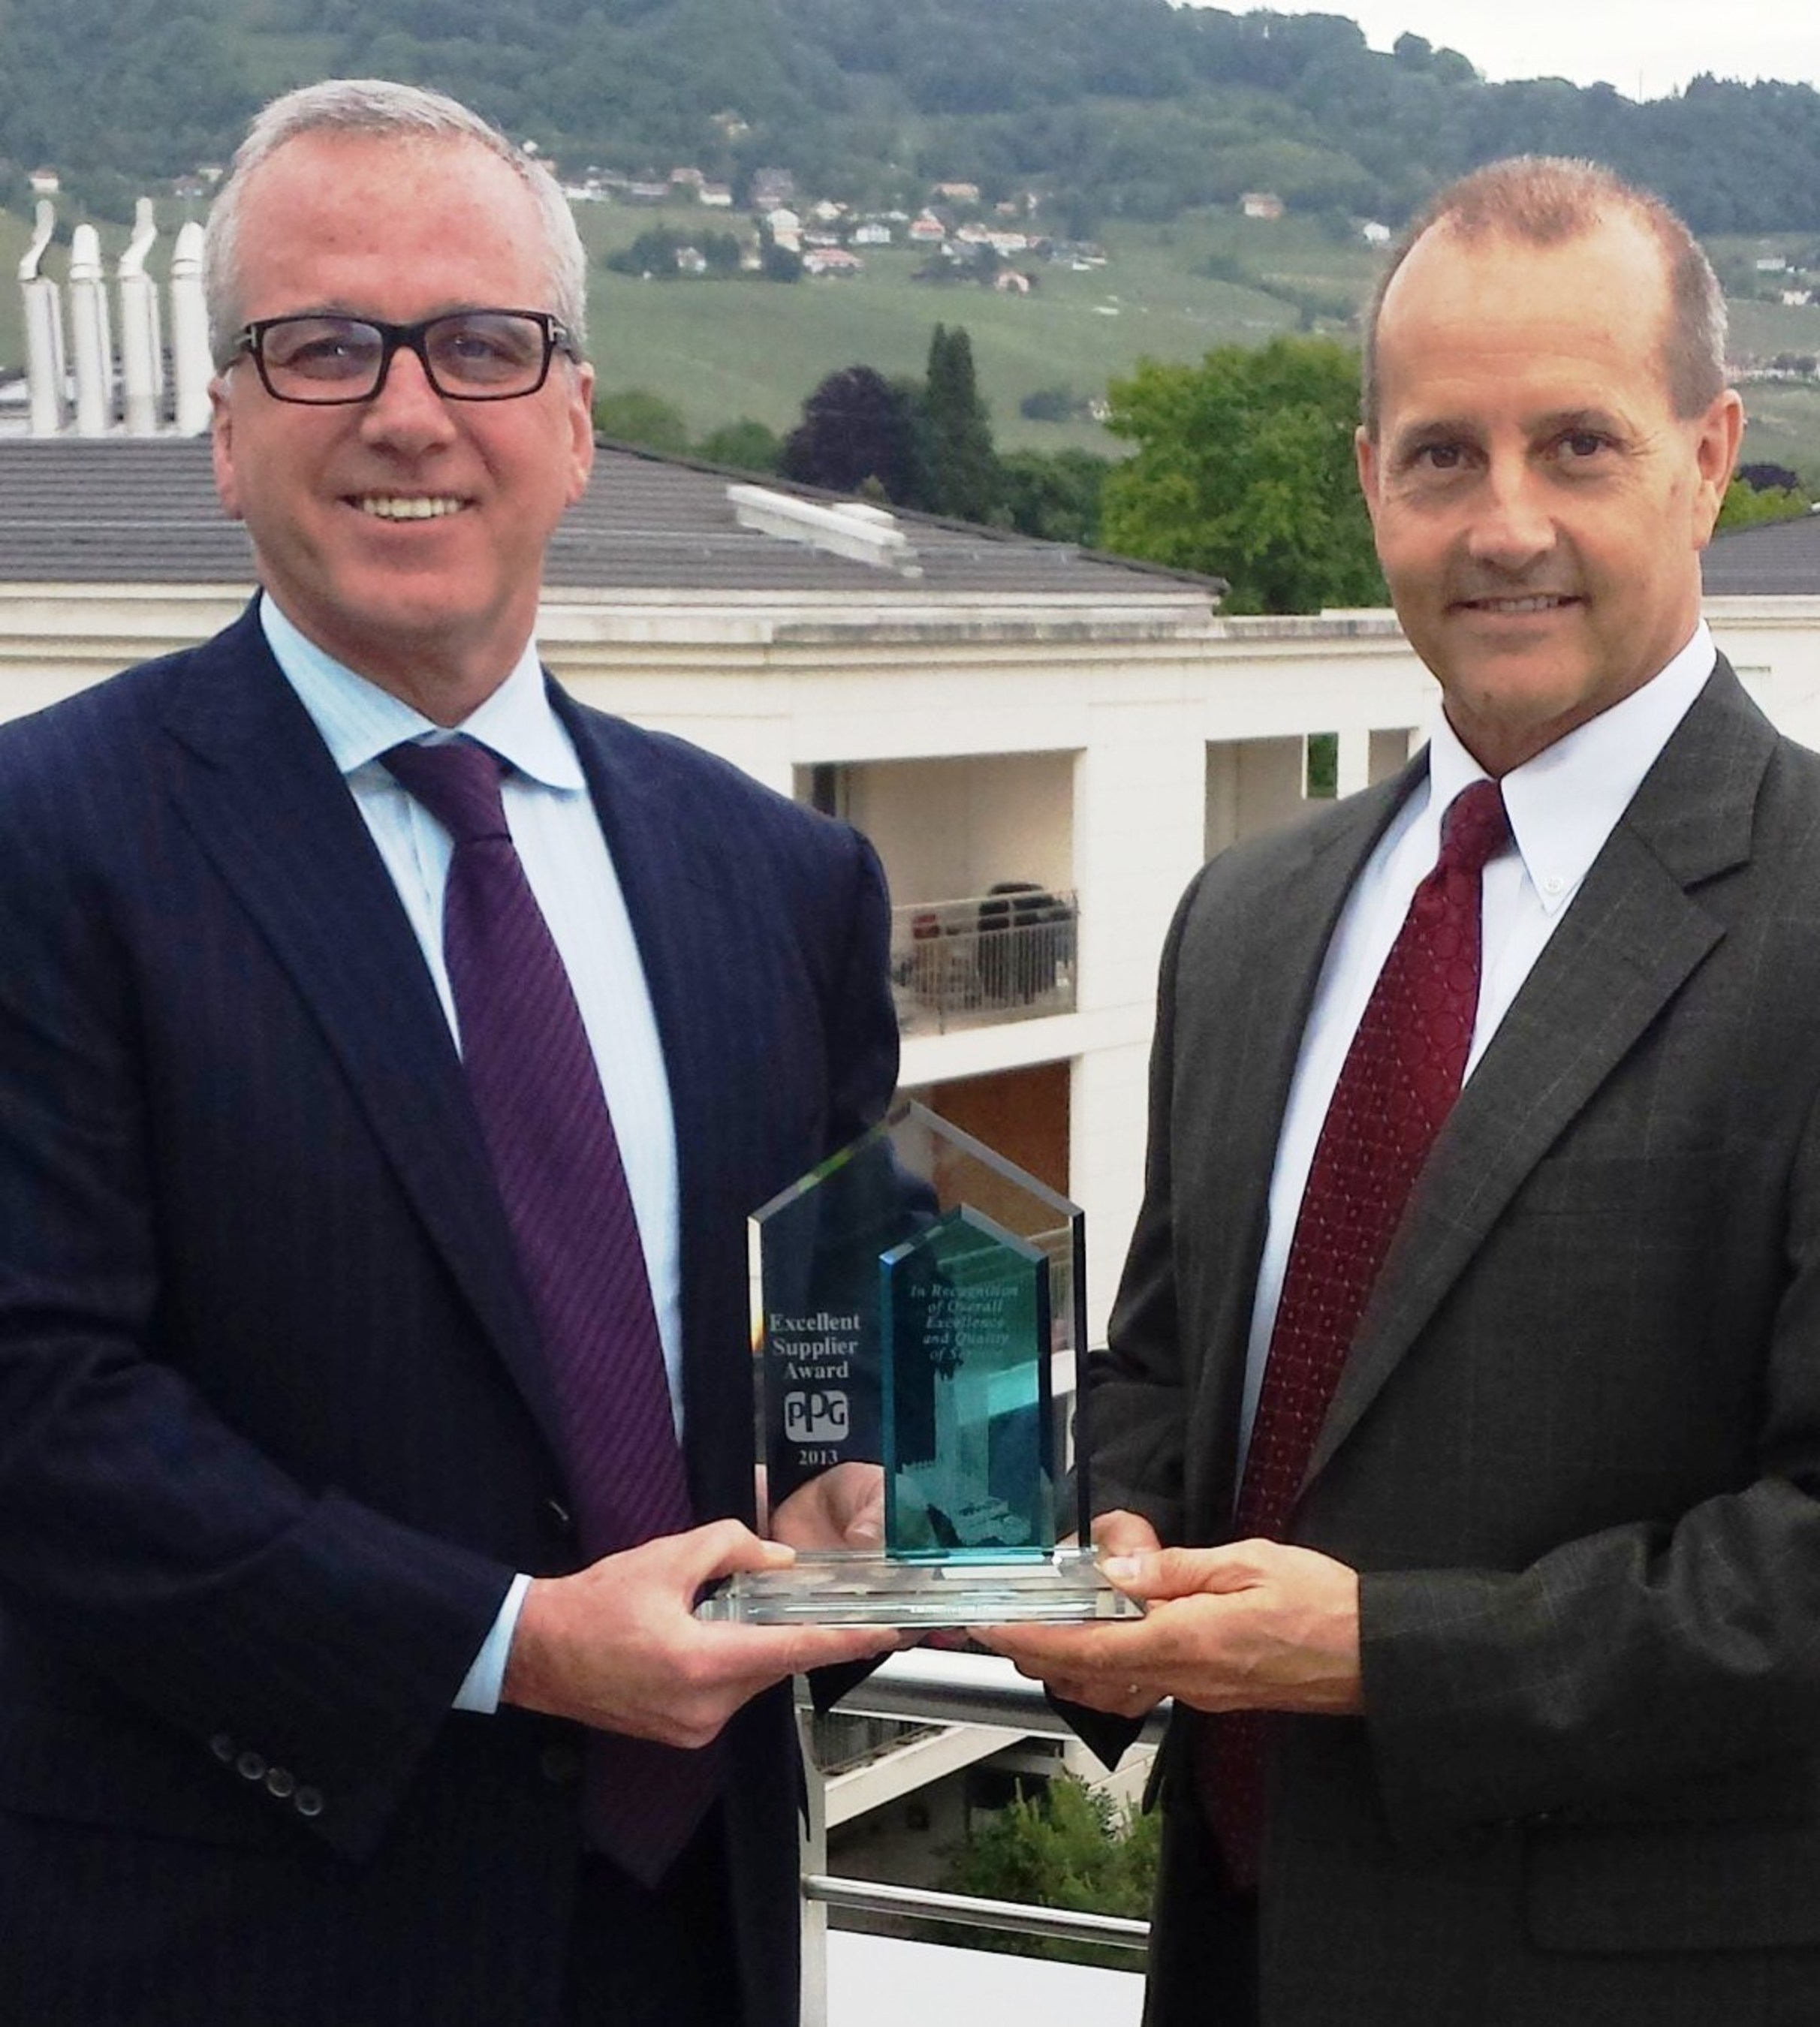 GEO's President and CEO Kenneth A. Ghazey (l) receives the Excellent Supplier Award from Gary Danowski, Vice President, Automotive Refinish, EMEA, PPG. (PRNewsFoto/GEO Specialty Chemicals, Inc.)